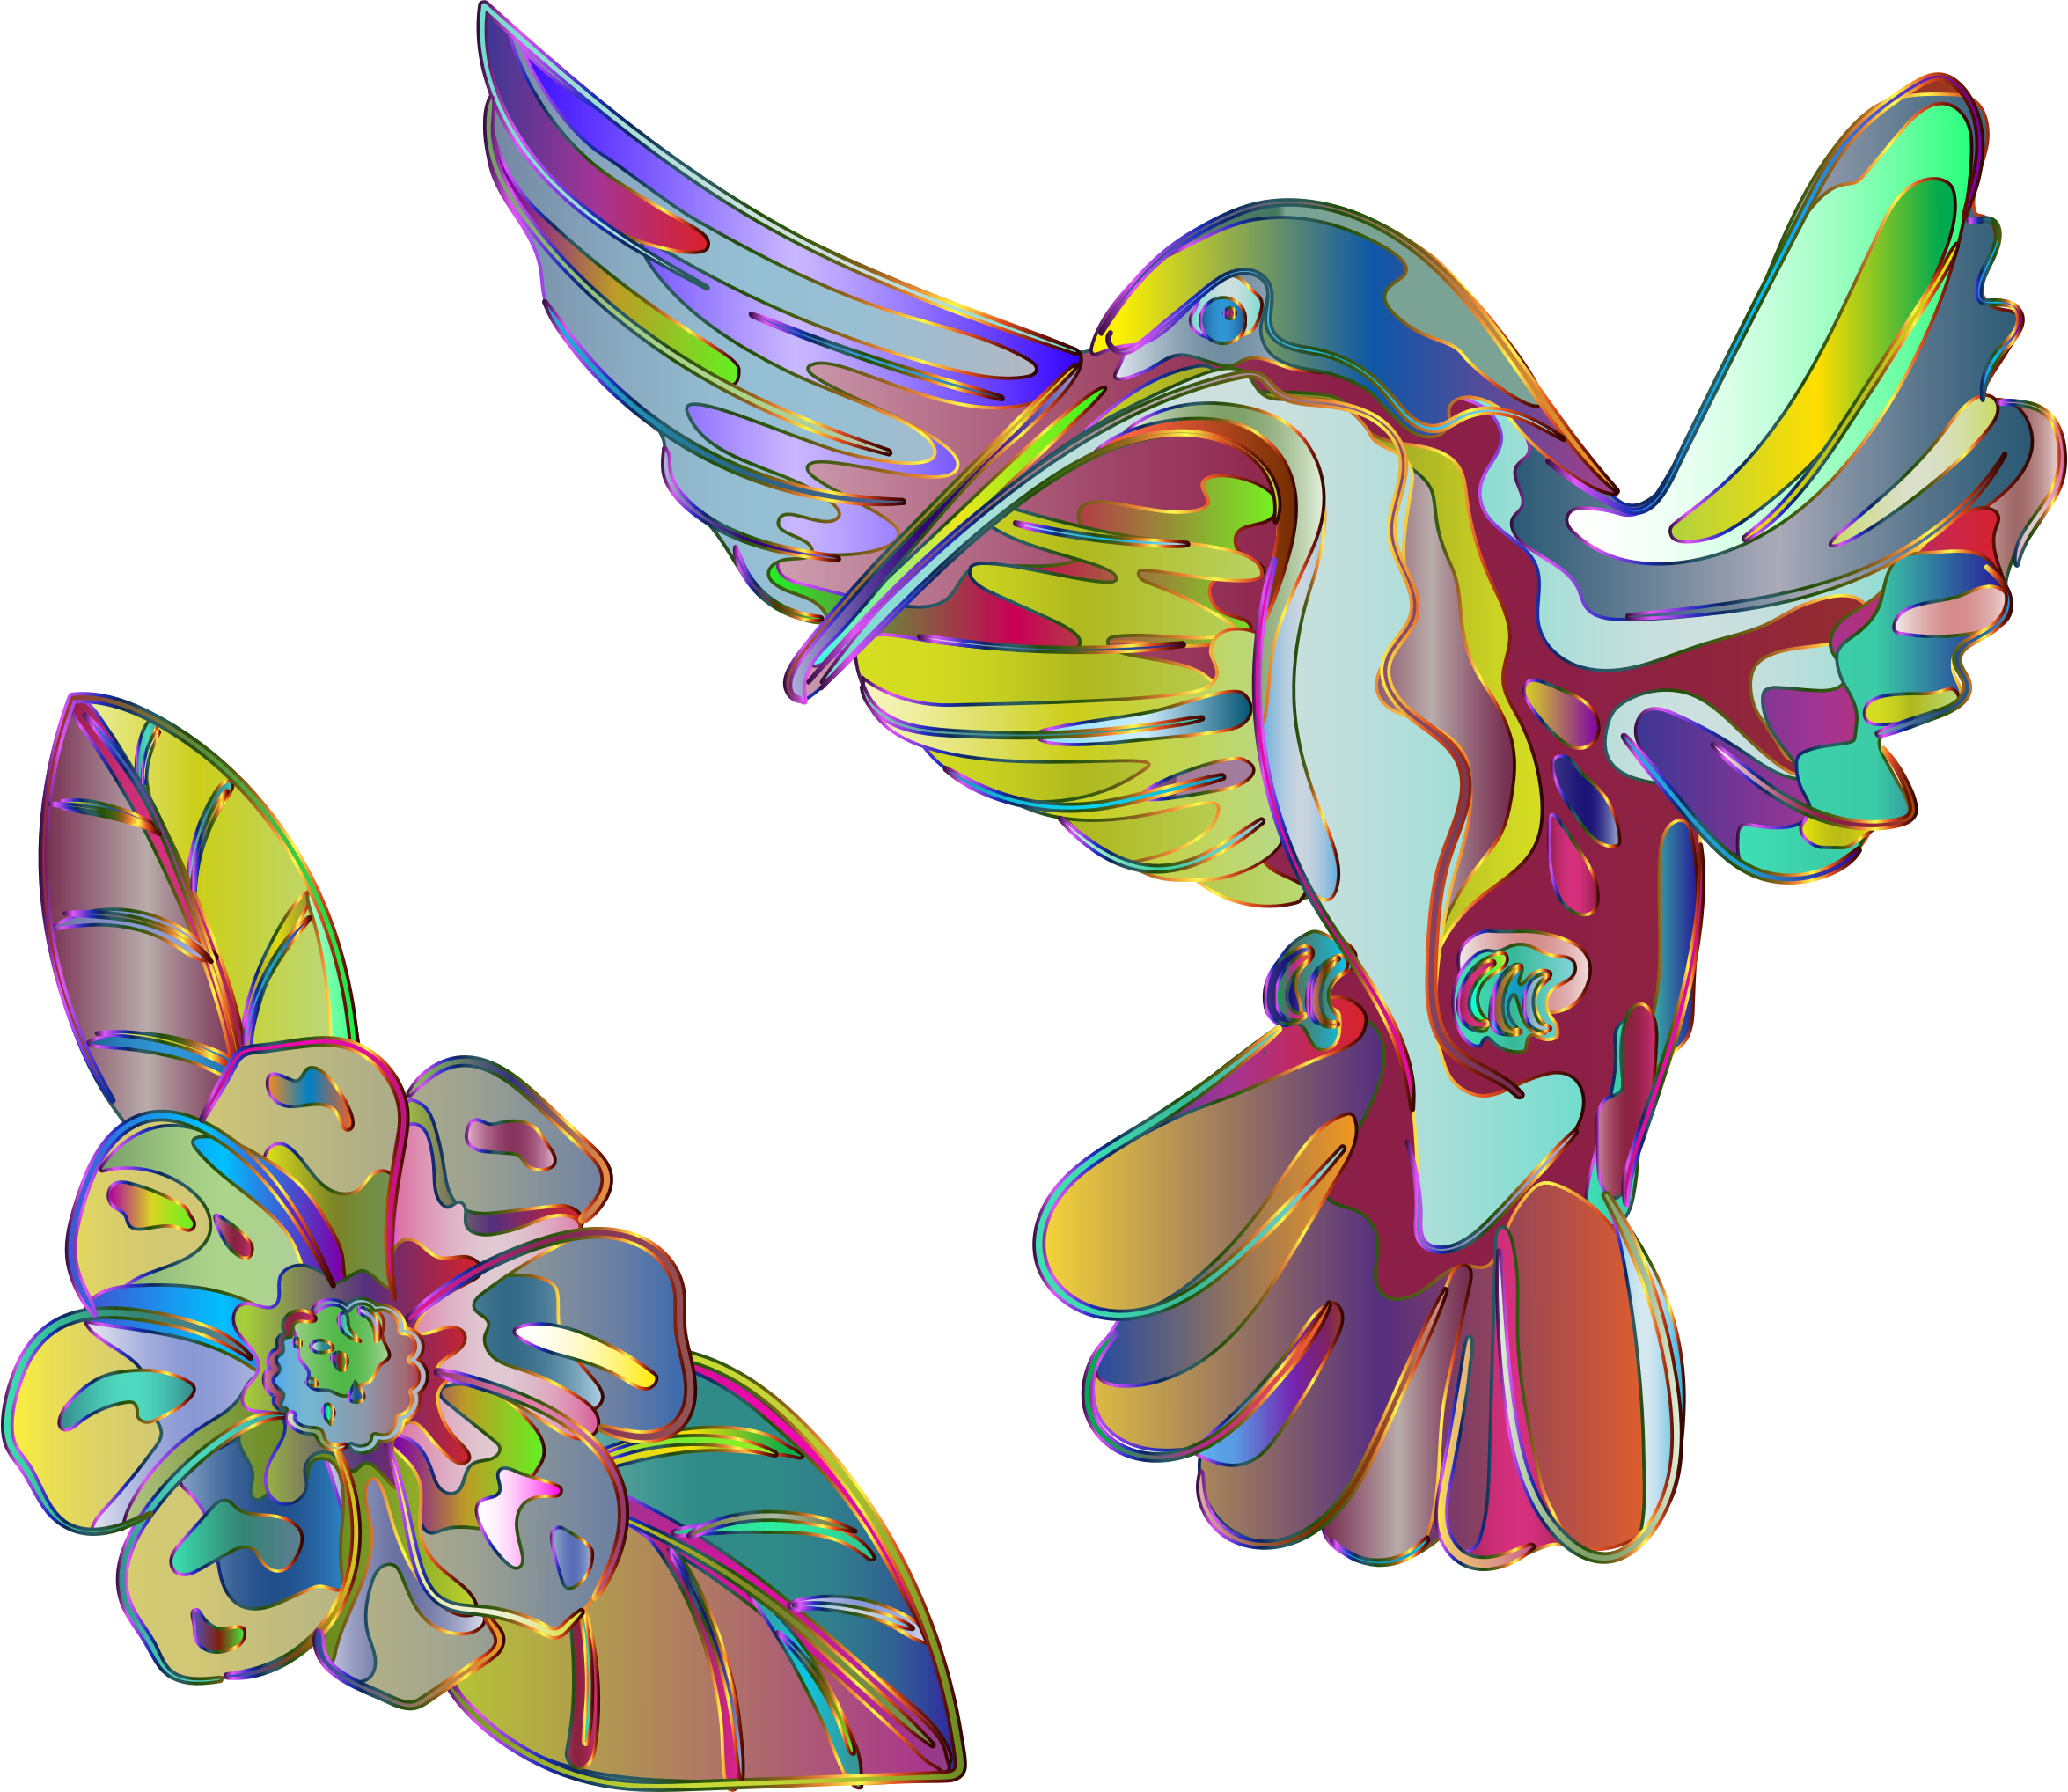 Clipart - Abstract Artistic Hummingbird And Flower vector royalty free stock